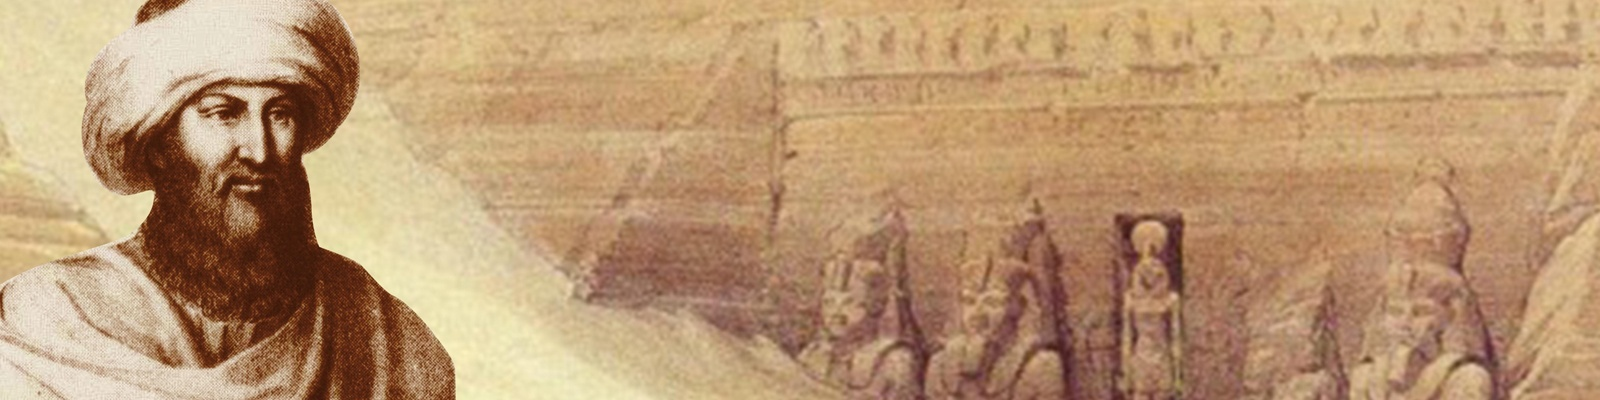 Abu Simbel: 200 Years After the Passing of Sheikh Ibrahim Burckhardt